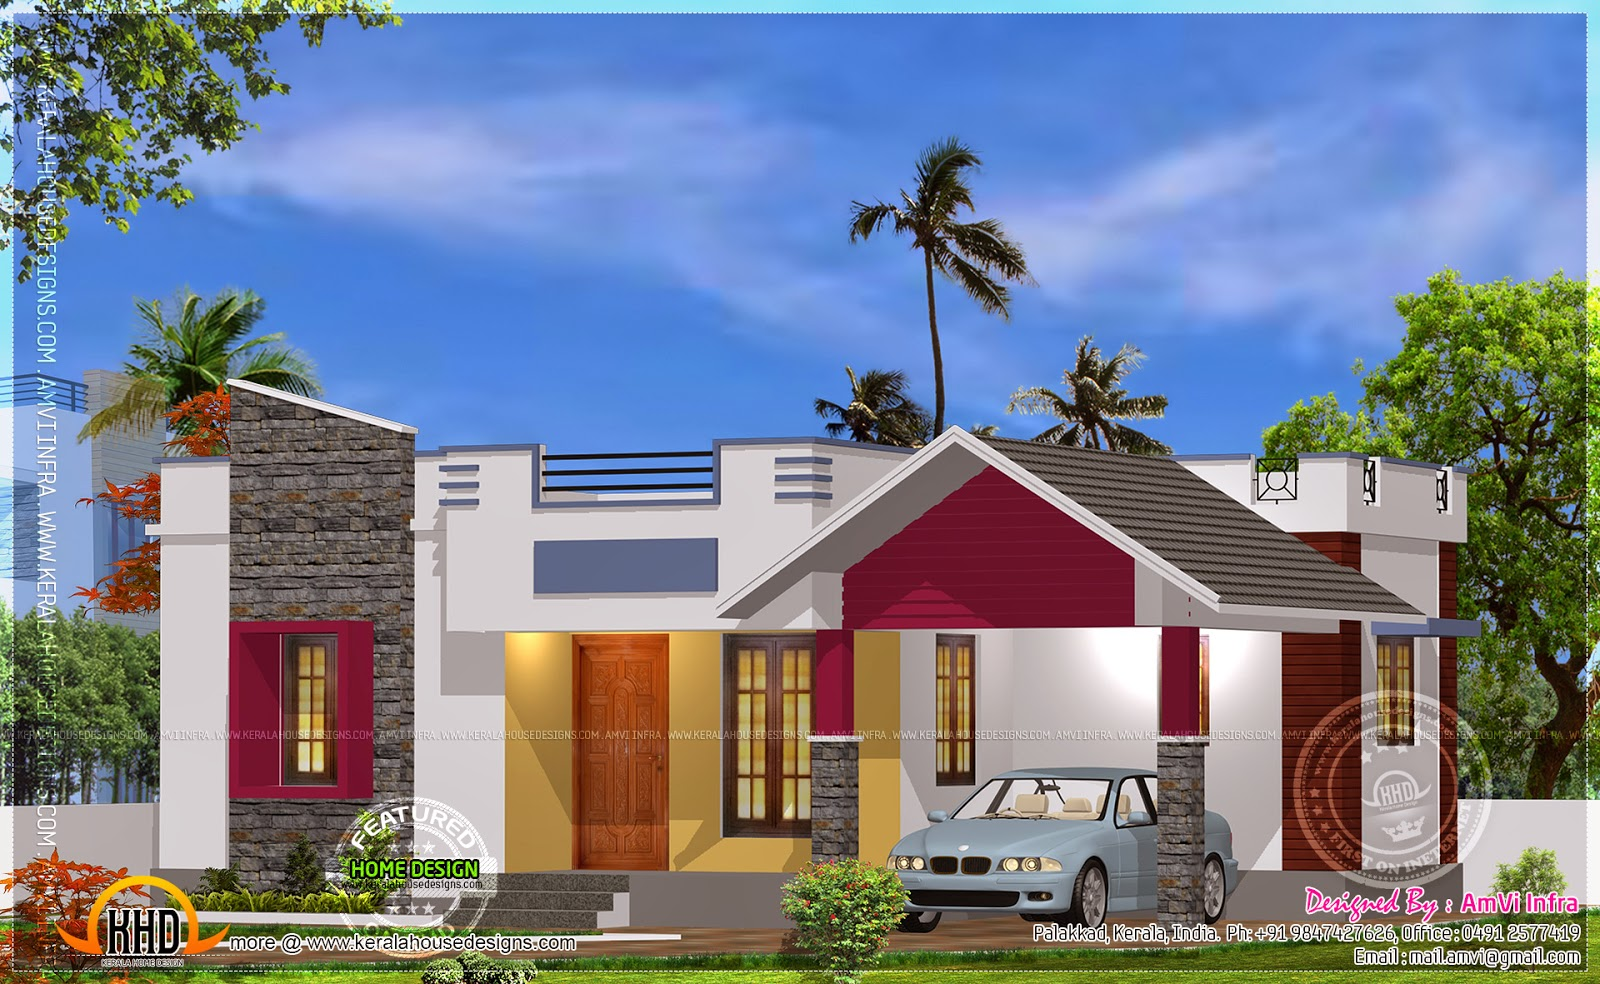 1000 Sq Ft House Plans 2 Bedroom Kerala Style, House Plans For 800 Sq Ft